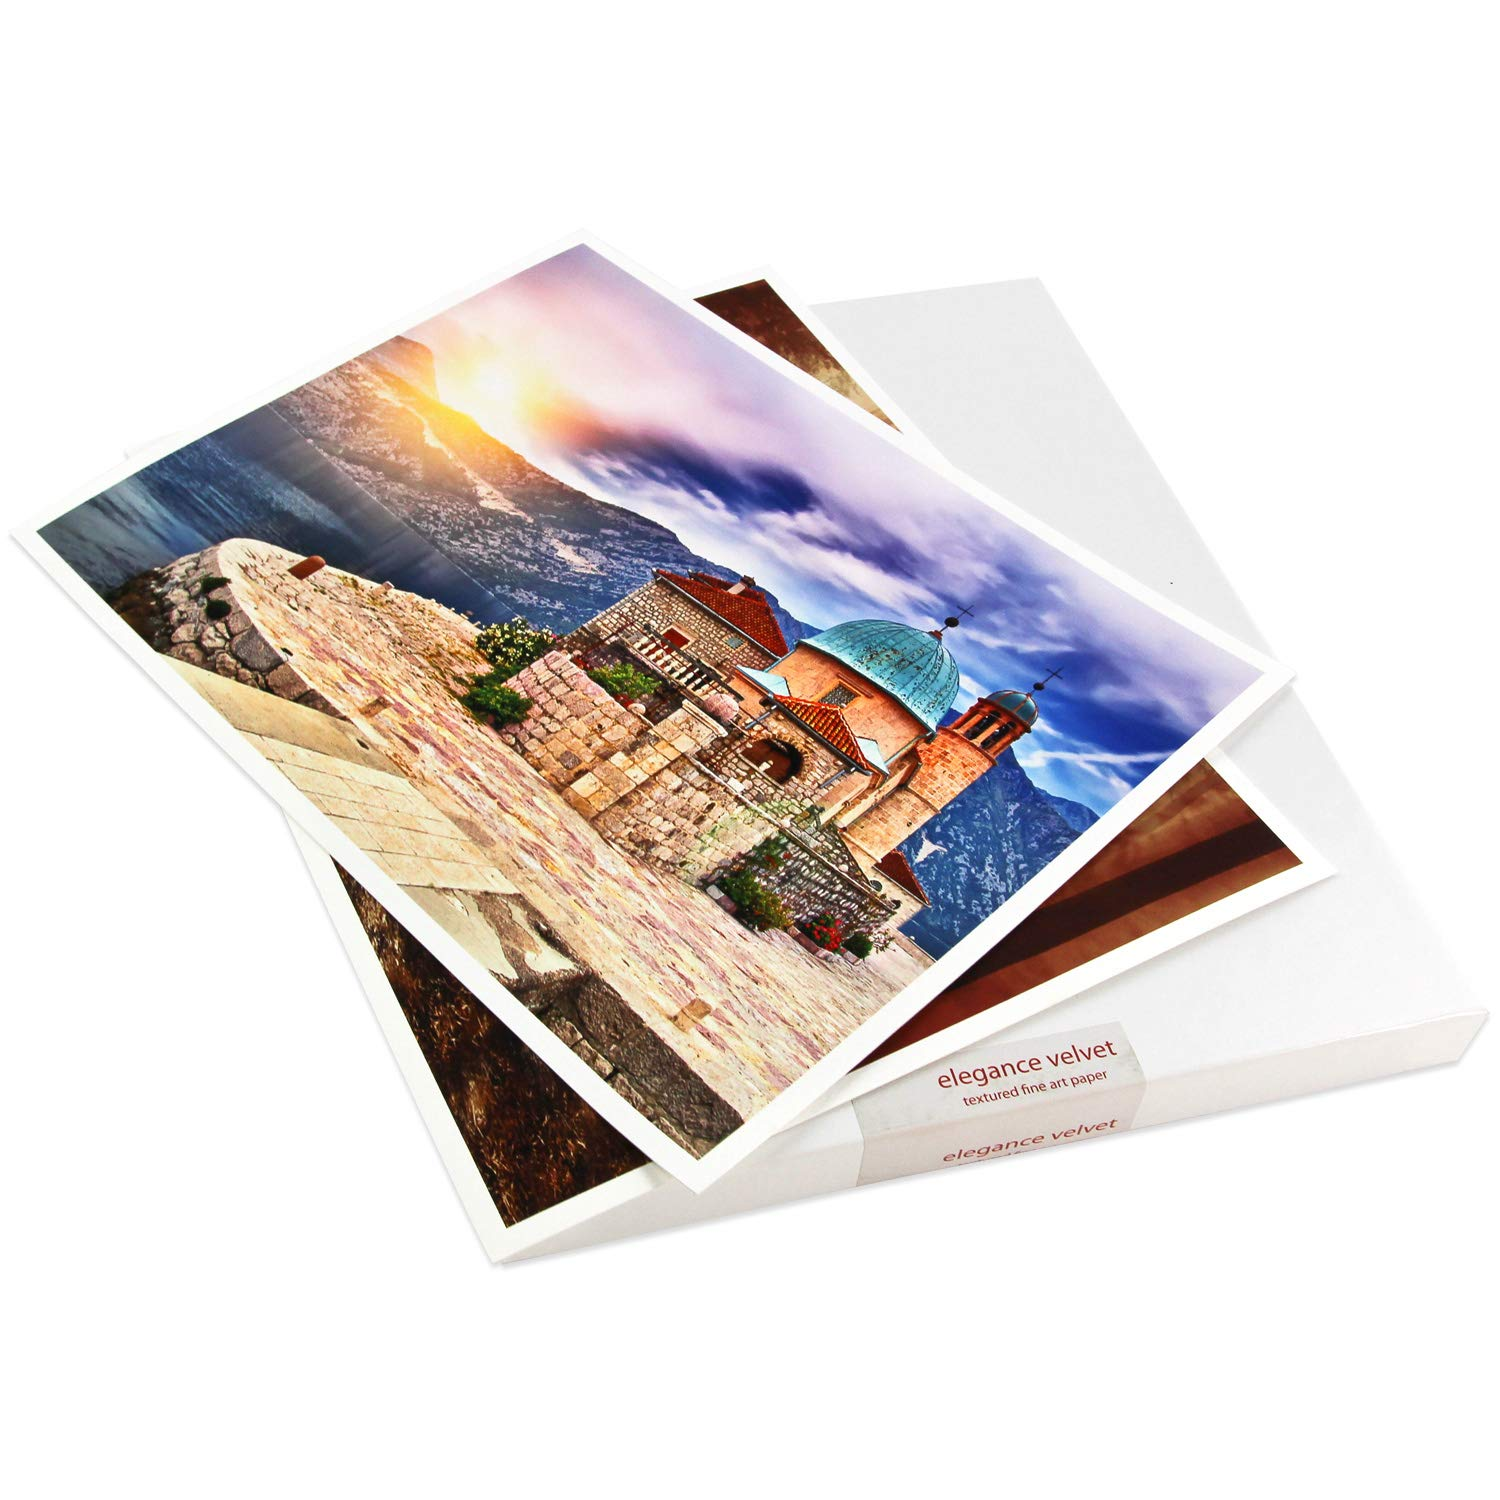 Elegance Velvet 17 in x 22 in, 25 Sheets is a Premium Matte 310 gsm, Cold Pressed Bright White Museum Grade Fine Art Inkjet Paper, Compatible with Most Dye-Based and Pigment Printers